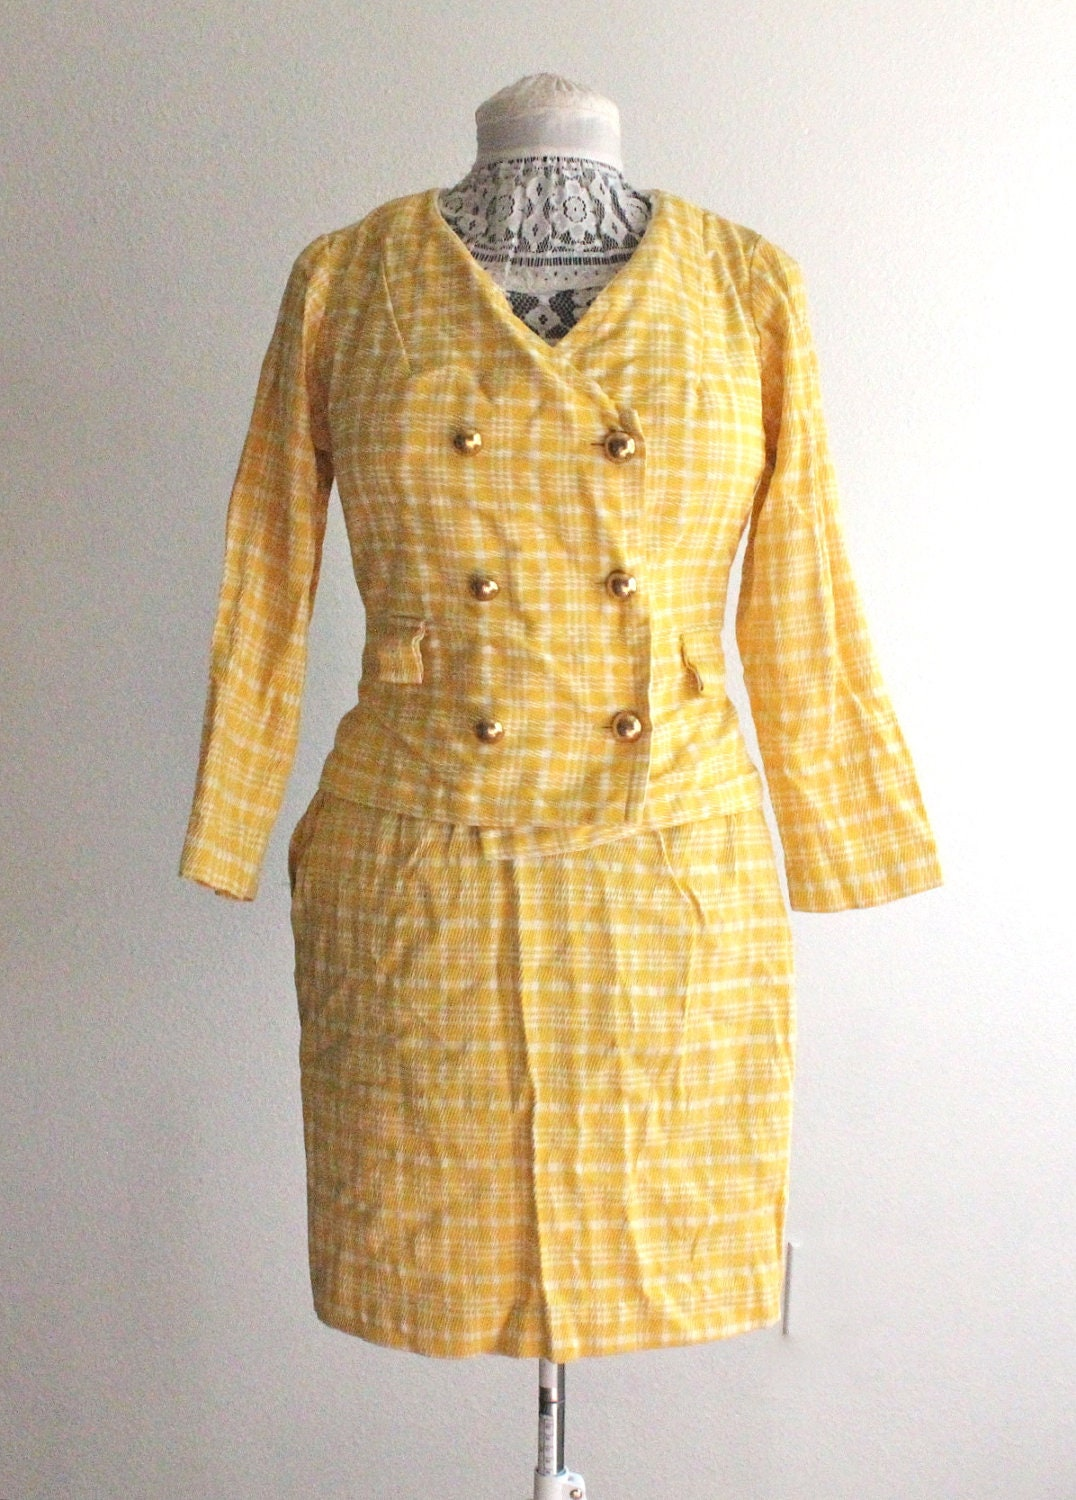 Find yellow plaid skirt suit for your sweet home here at Beddinginn. Fast worldwide shipping and high quality at affordable prices! Get yellow plaid skirt suit to match your decor now!